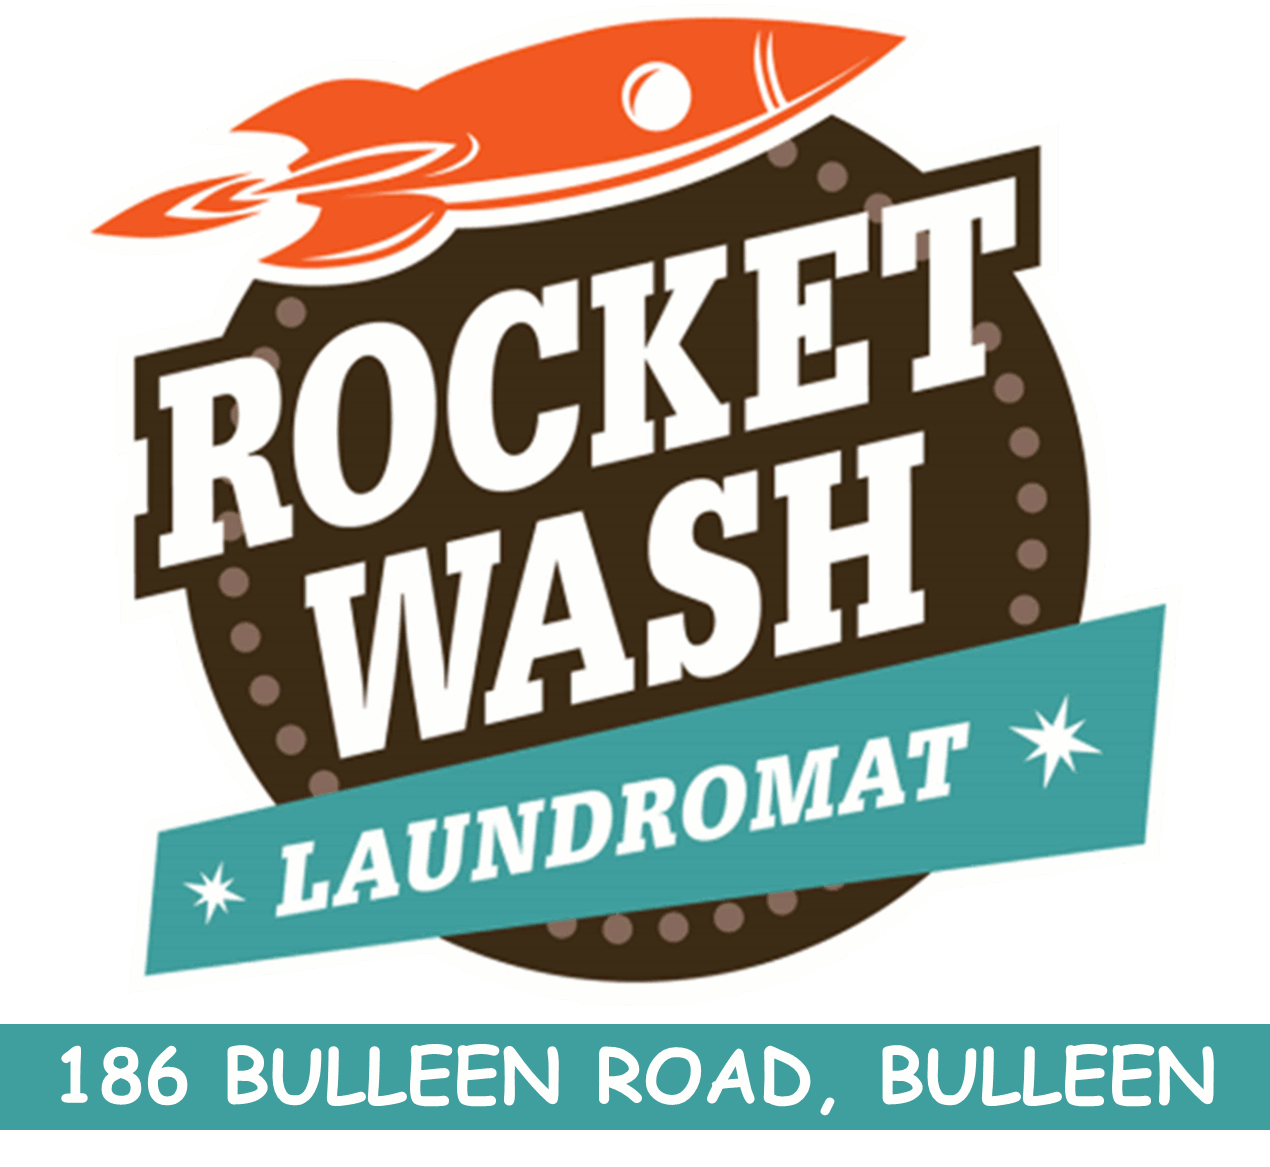 Washing Service and Ironing Service. Rocket Wash Laundromat - Best Coin Laundry in Melbourne!